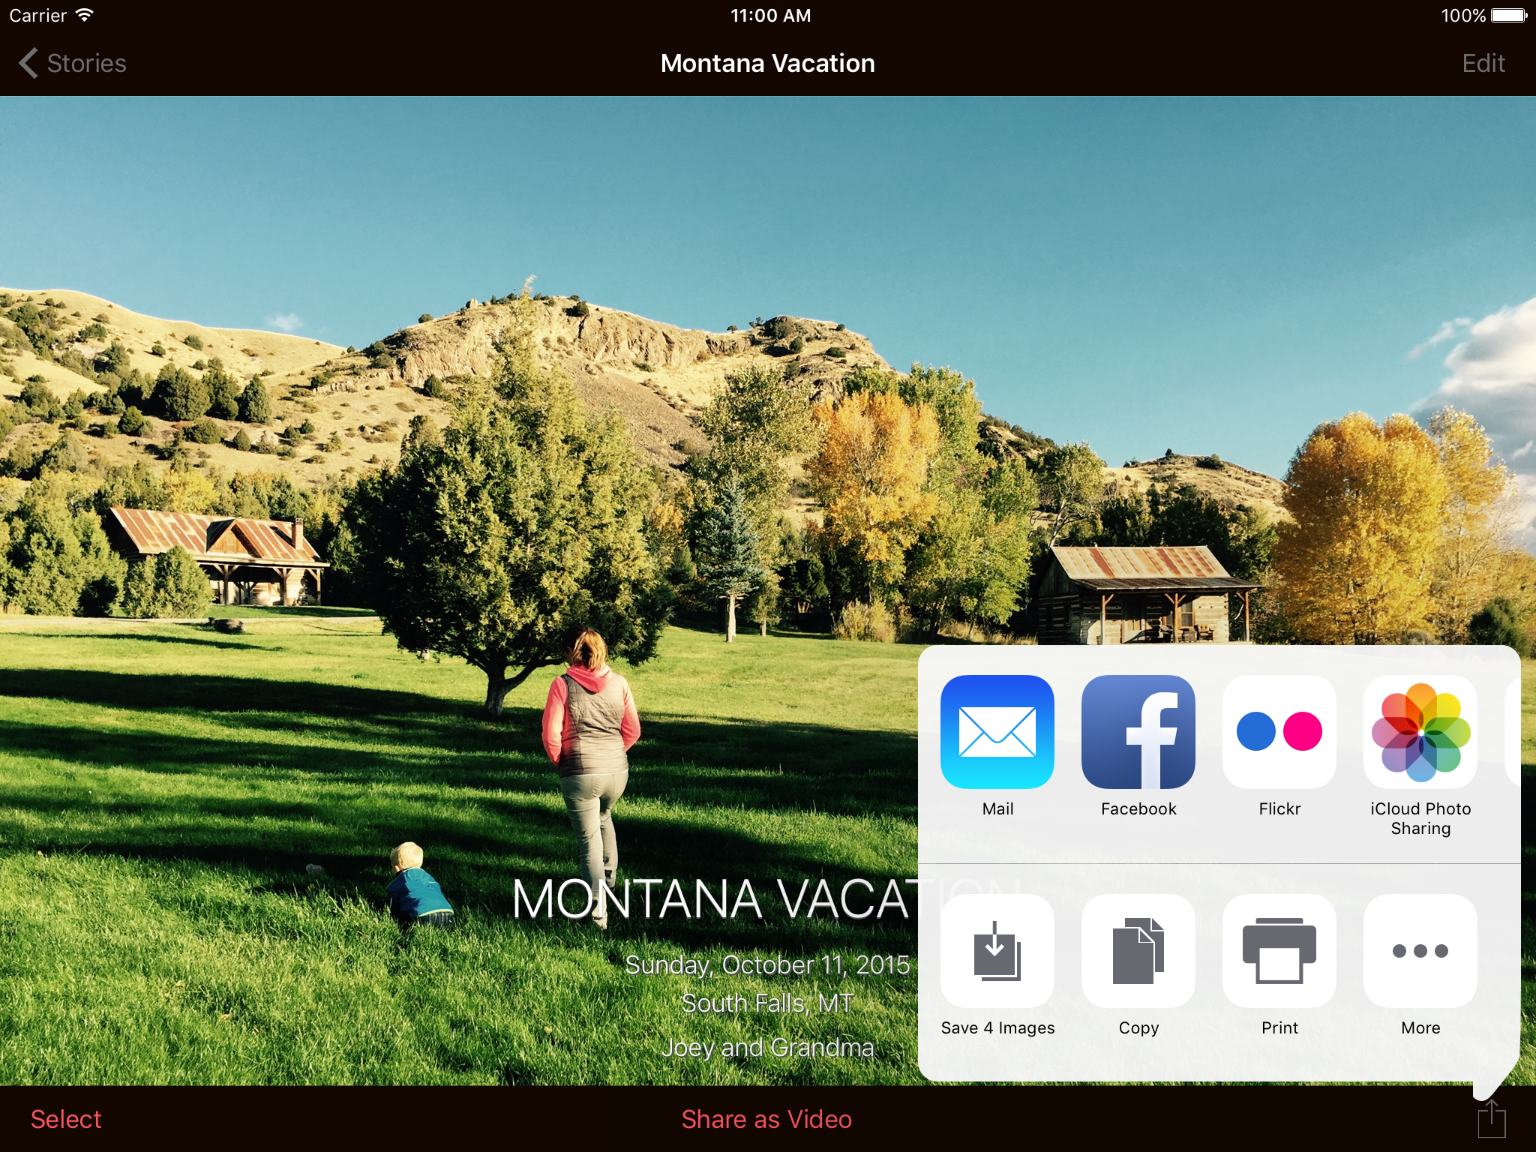 Share your photos across social networks, text message, and mail